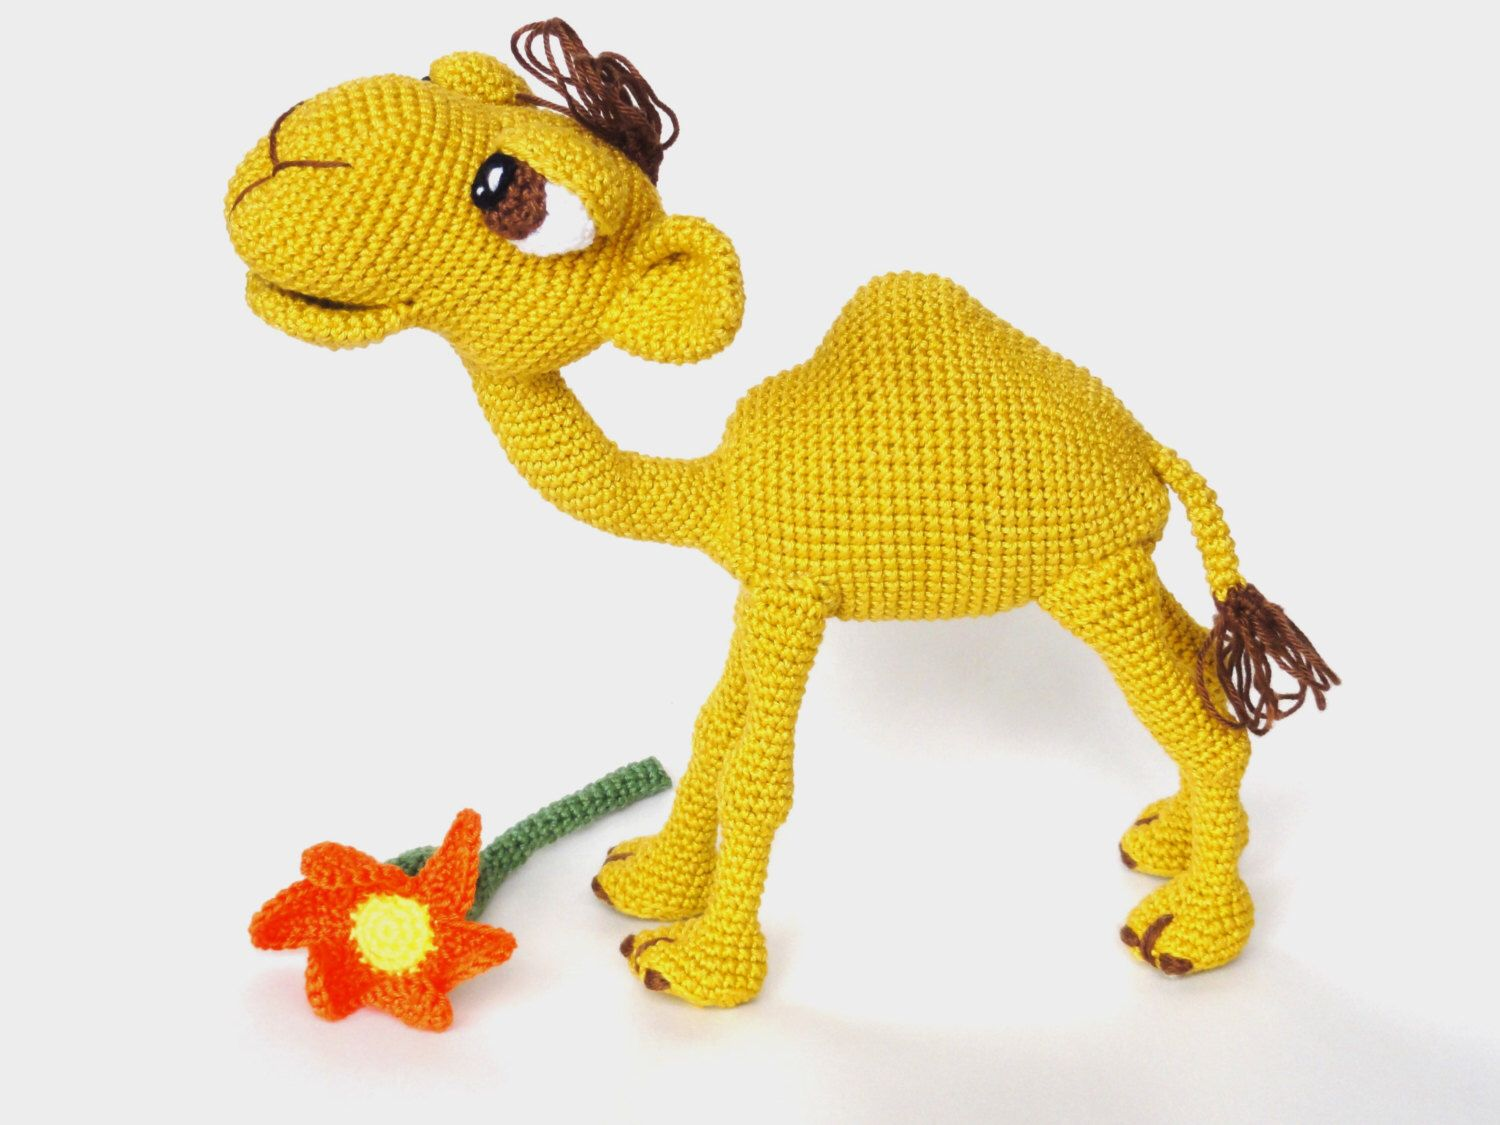 Amigurumi Pattern (Crochet) - Quasimodo the Camel by IlDikko on Etsy ...